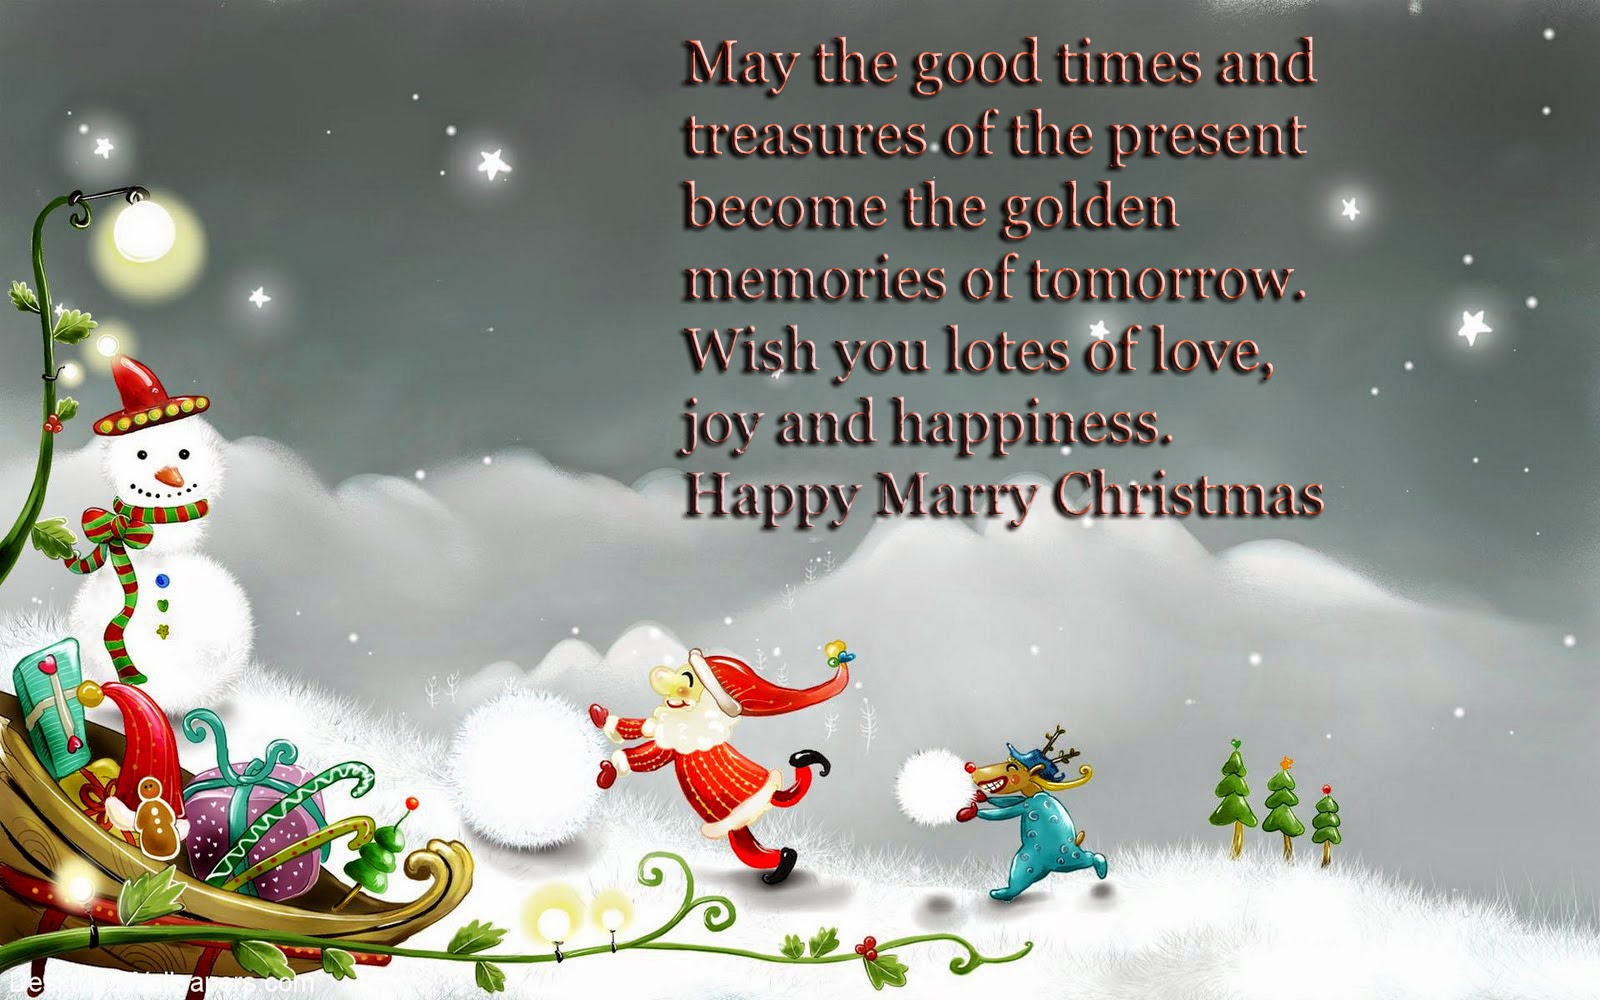 Merry christmas 2014 greetings message sms wishes quotes world text christmas sms quotes christmas sms wishes urdu english roman greetings mobiles merry christmas 2014 greetings messages sms wishes whats app kristyandbryce Choice Image